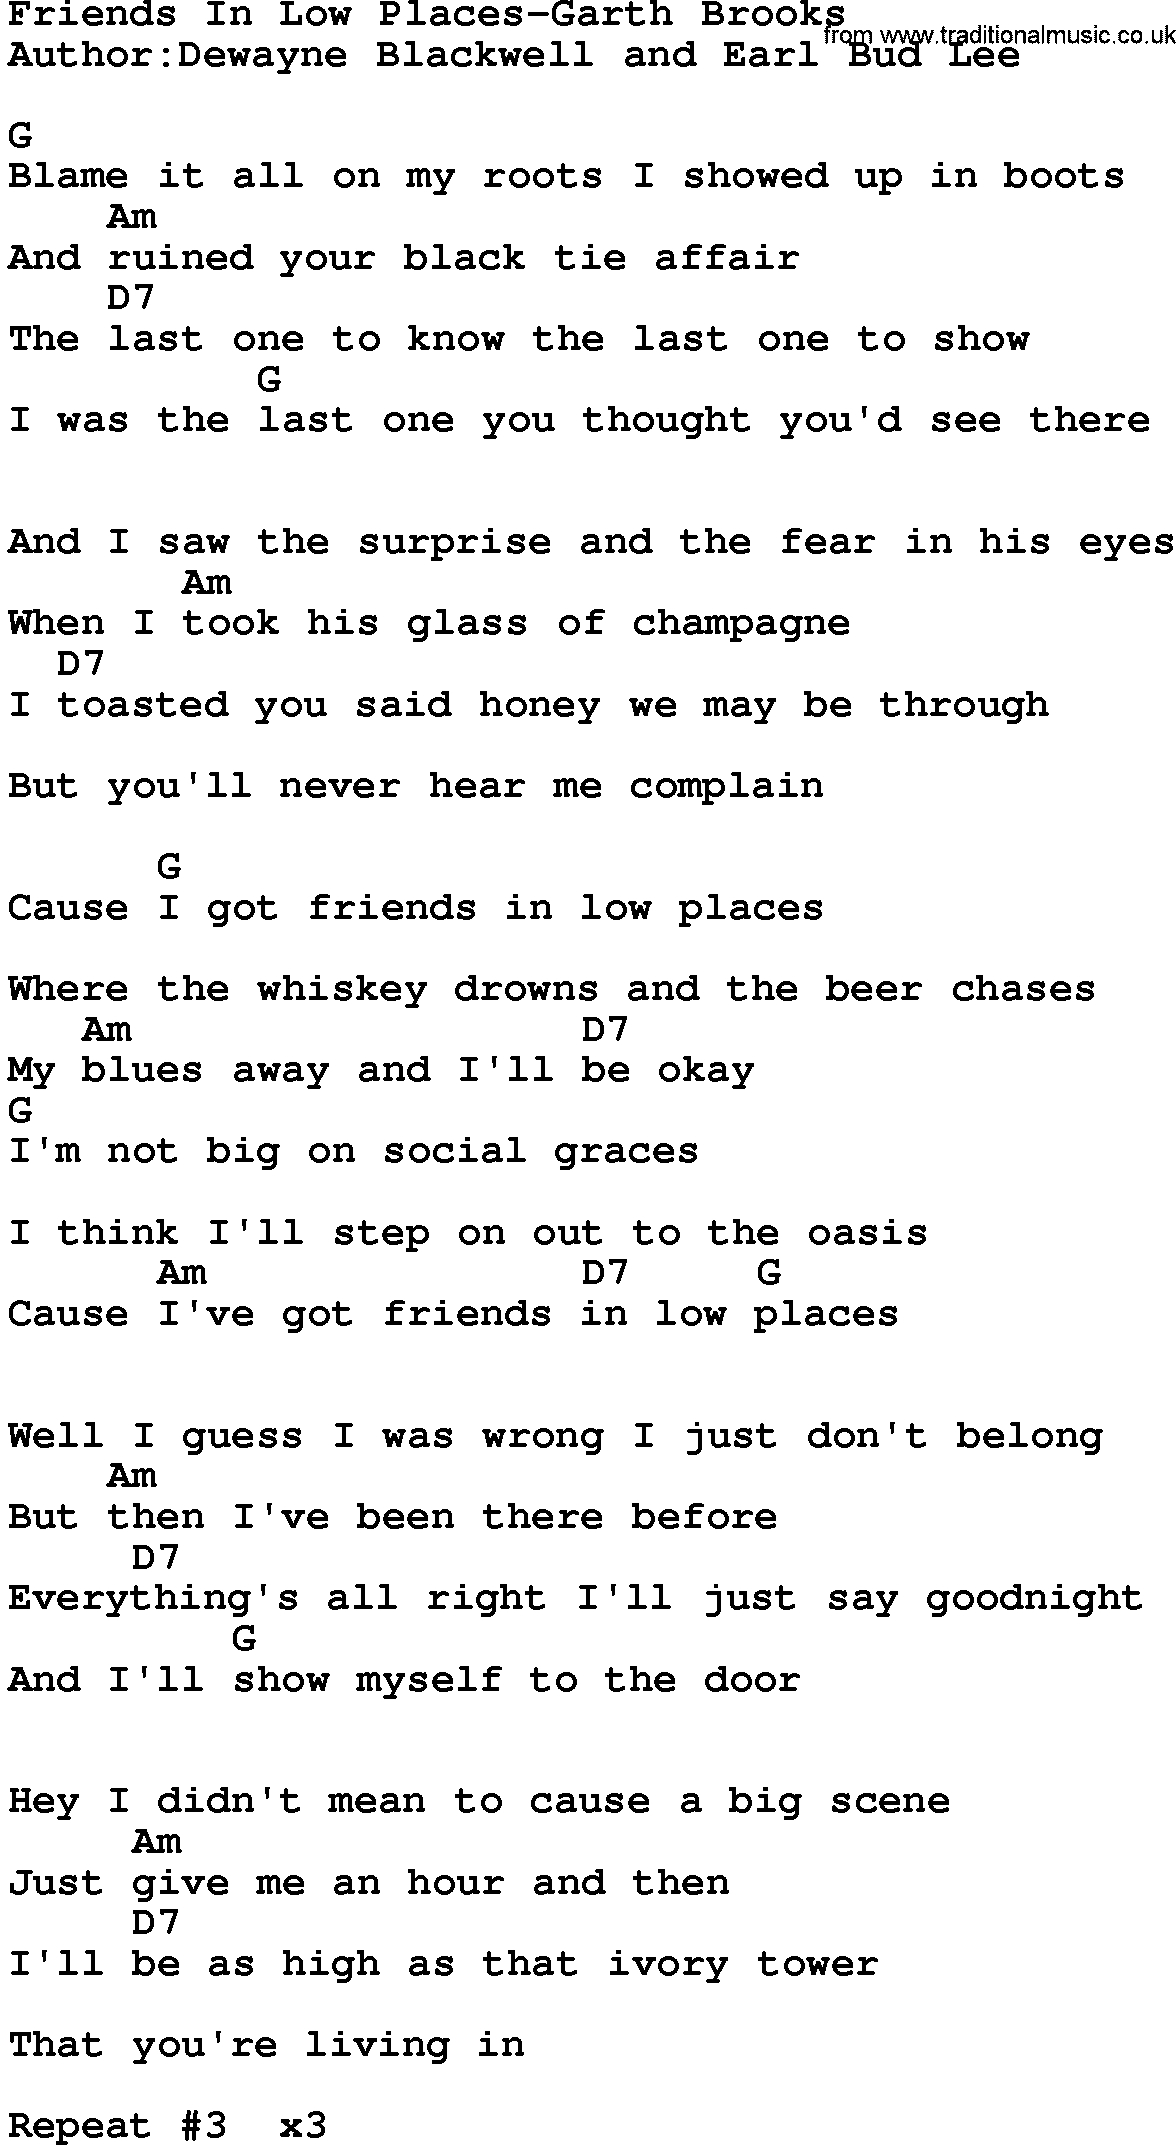 Friends In Low Places Chords Country Musicfriends In Low Places Garth Brooks Lyrics And Chords